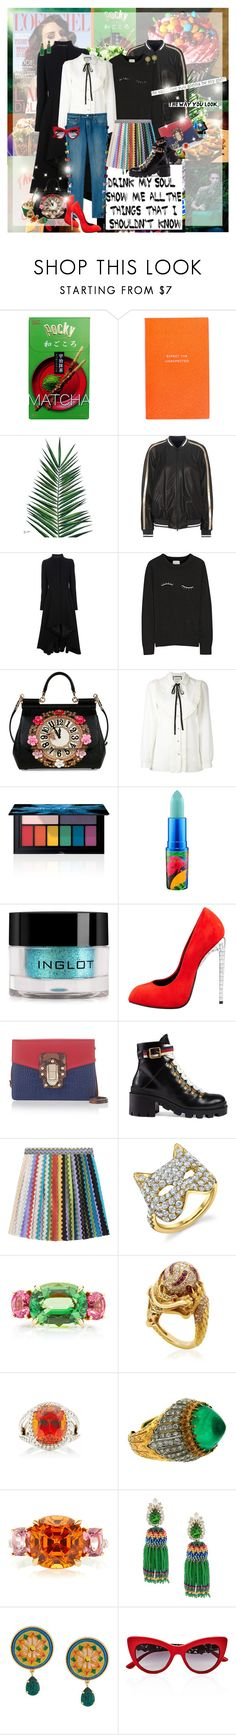 """Rainbow Accent"" by lady-redrise ❤ liked on Polyvore featuring Hermès, Smythson, Nika, xO Design, Brunello Cucinelli, Kipling, Alexander McQueen, Band of Outsiders, Dolce&Gabbana and Gucci"